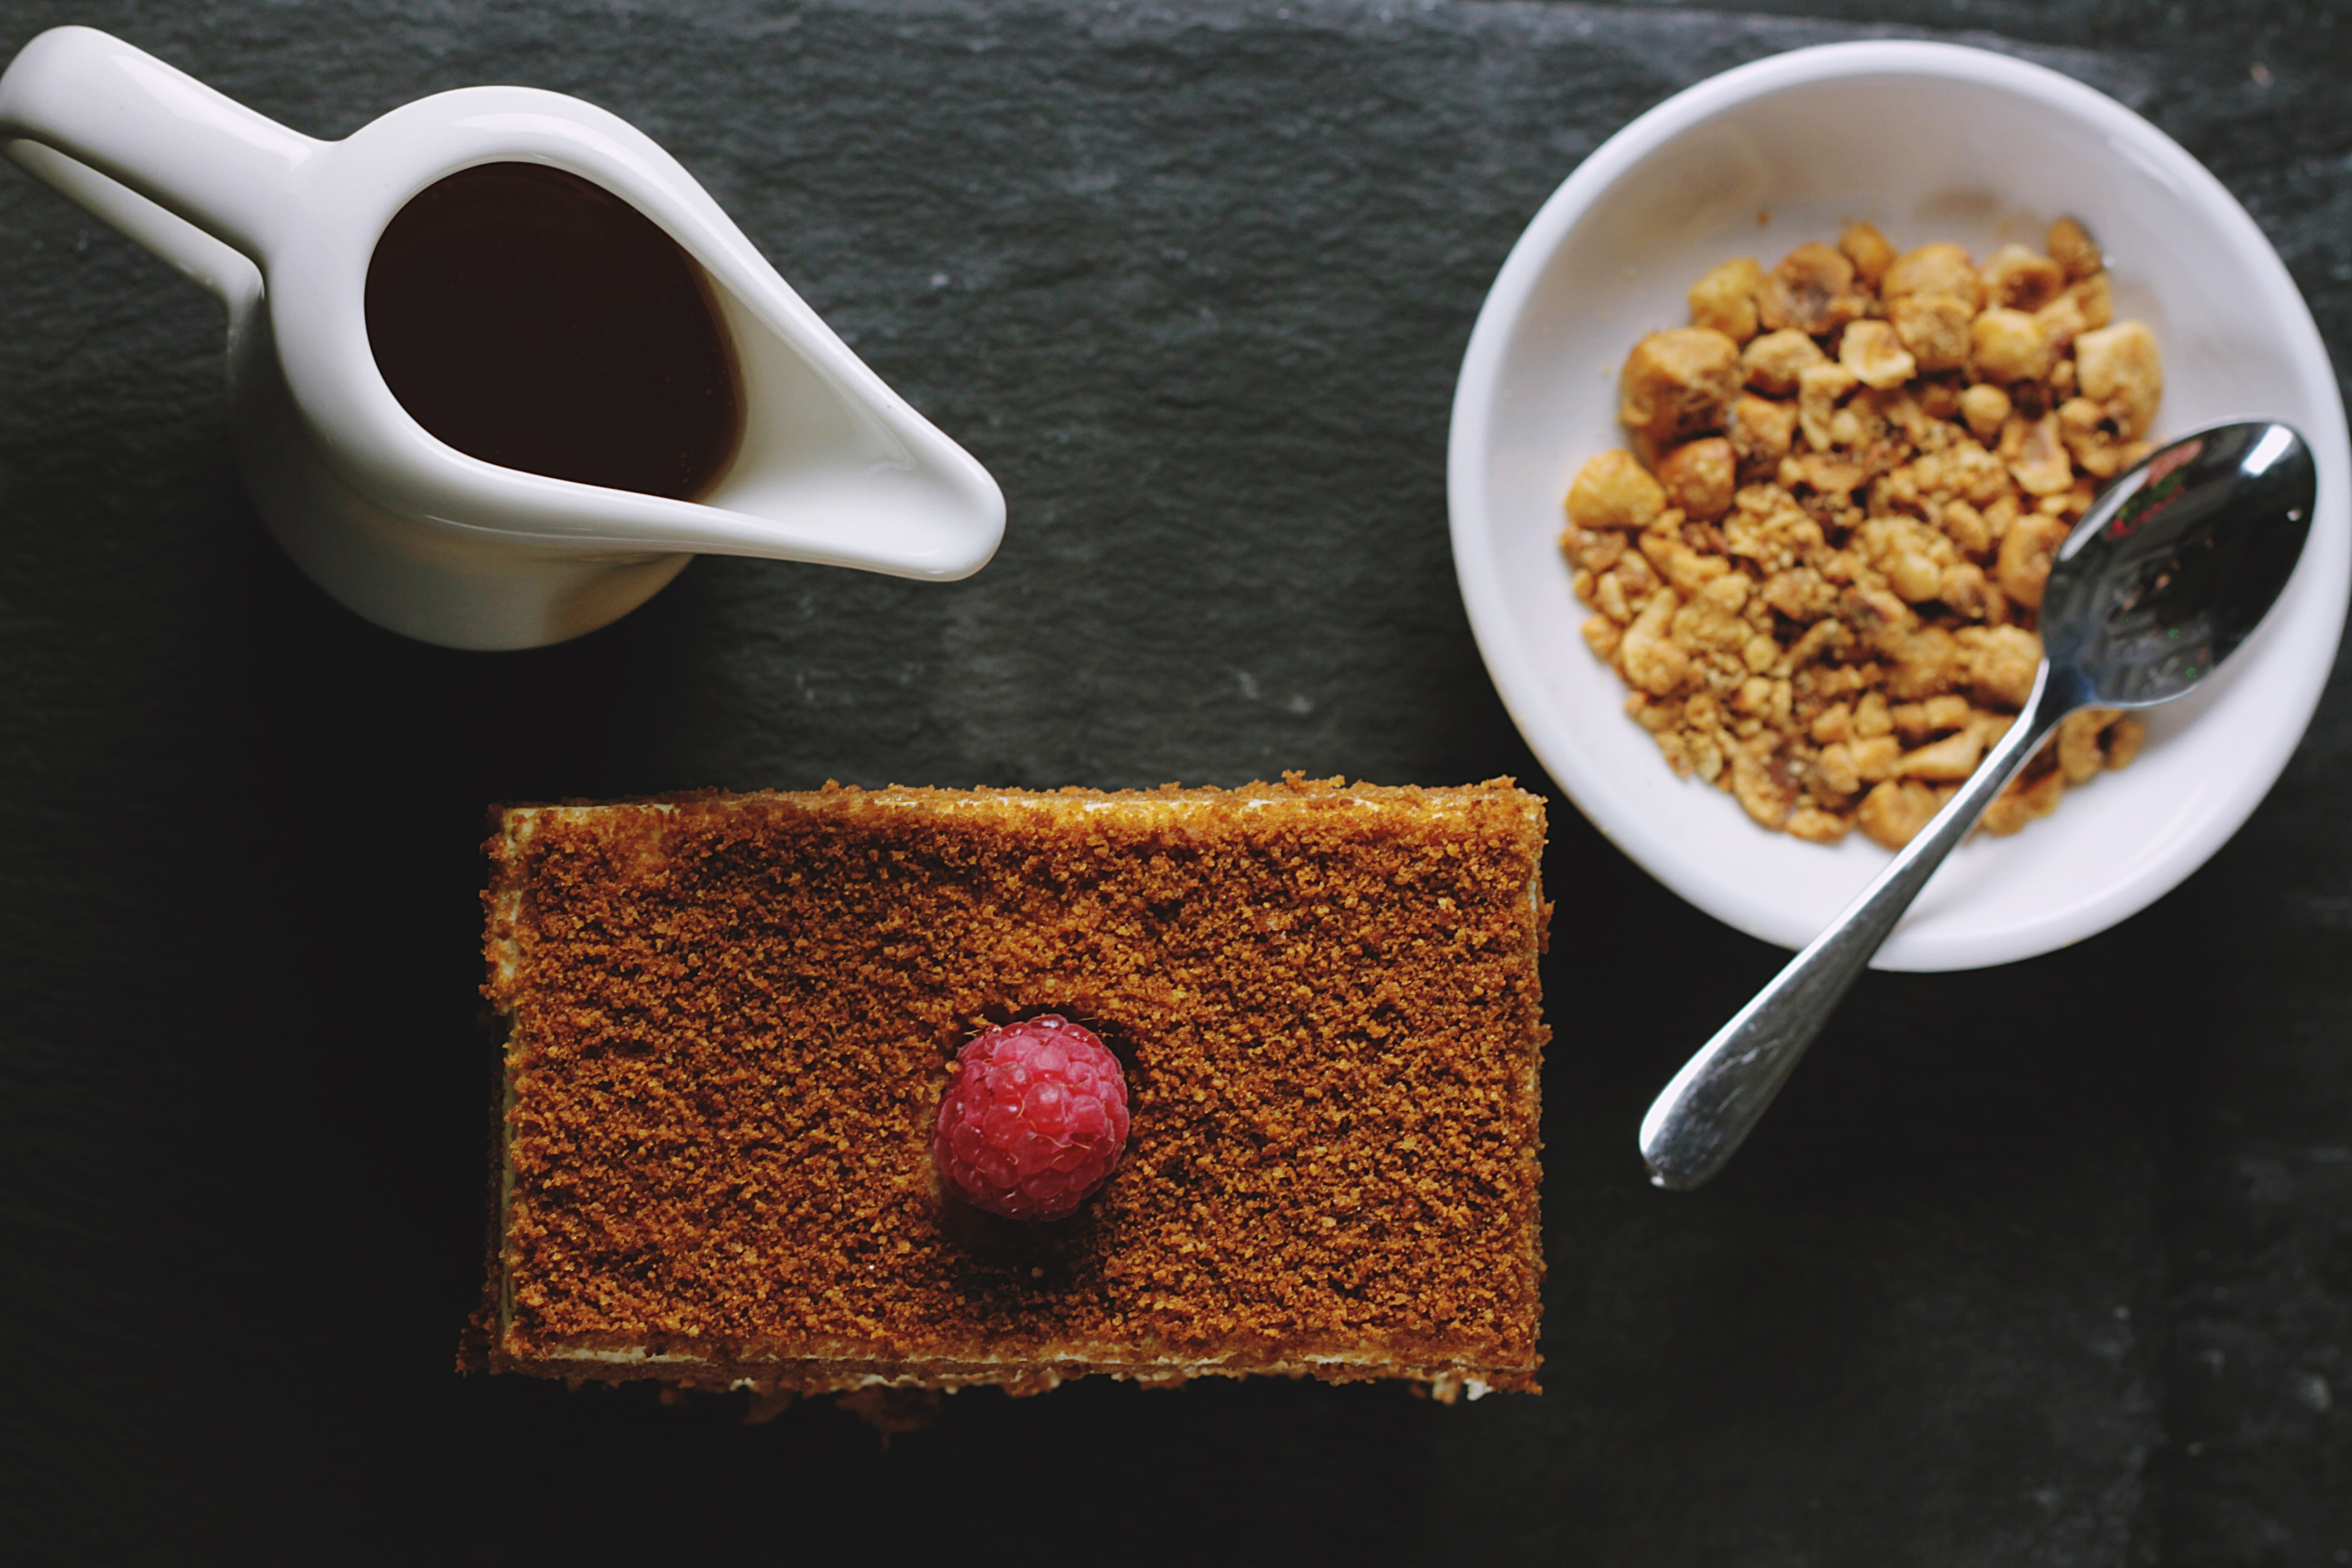 Flat lay of breakfast cake, syrup, and hazelnuts